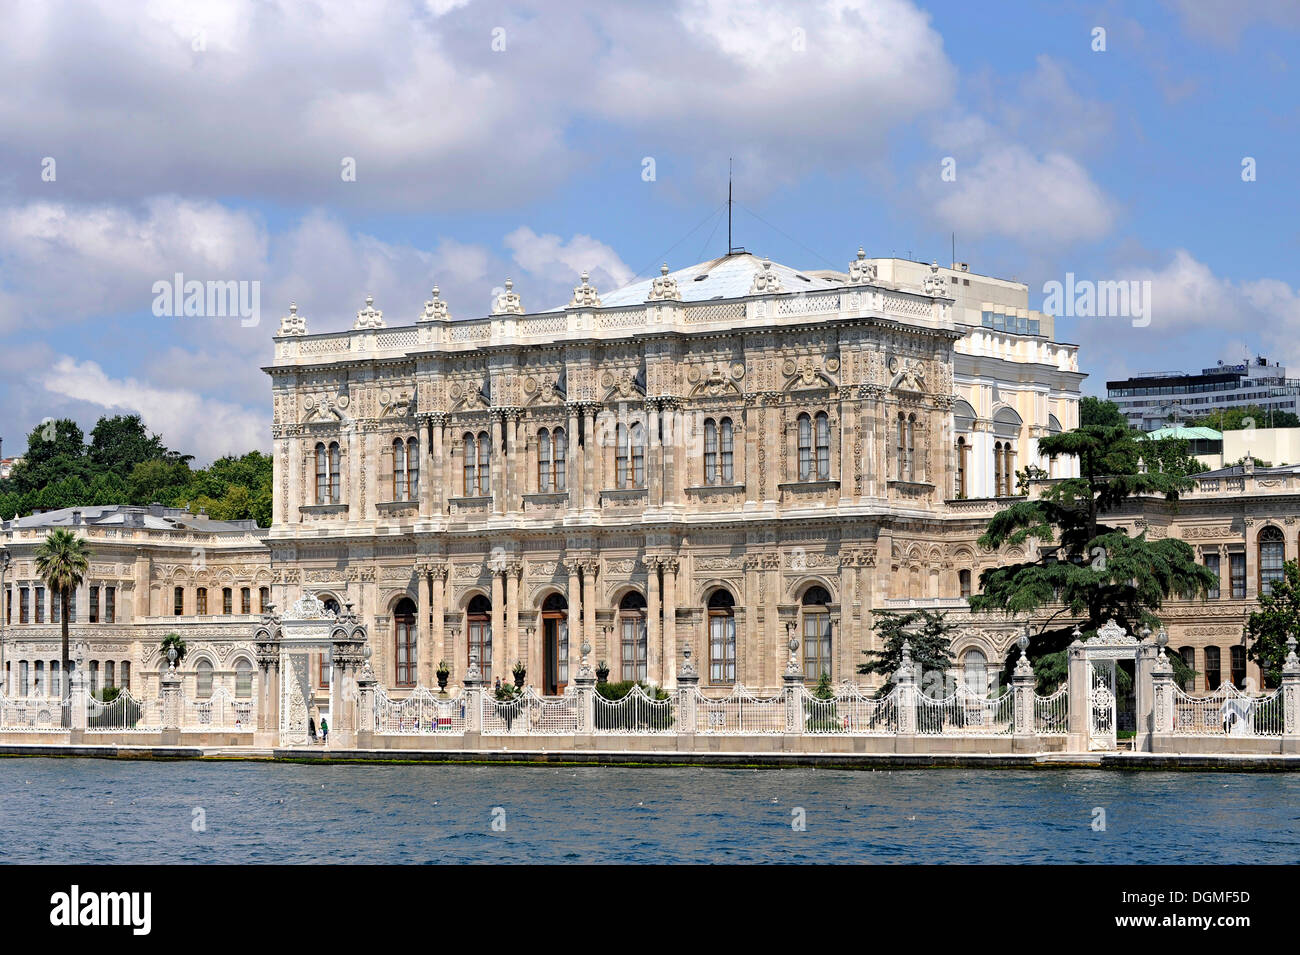 dolmabahce sarayi or dolmabahce palace sultans palace